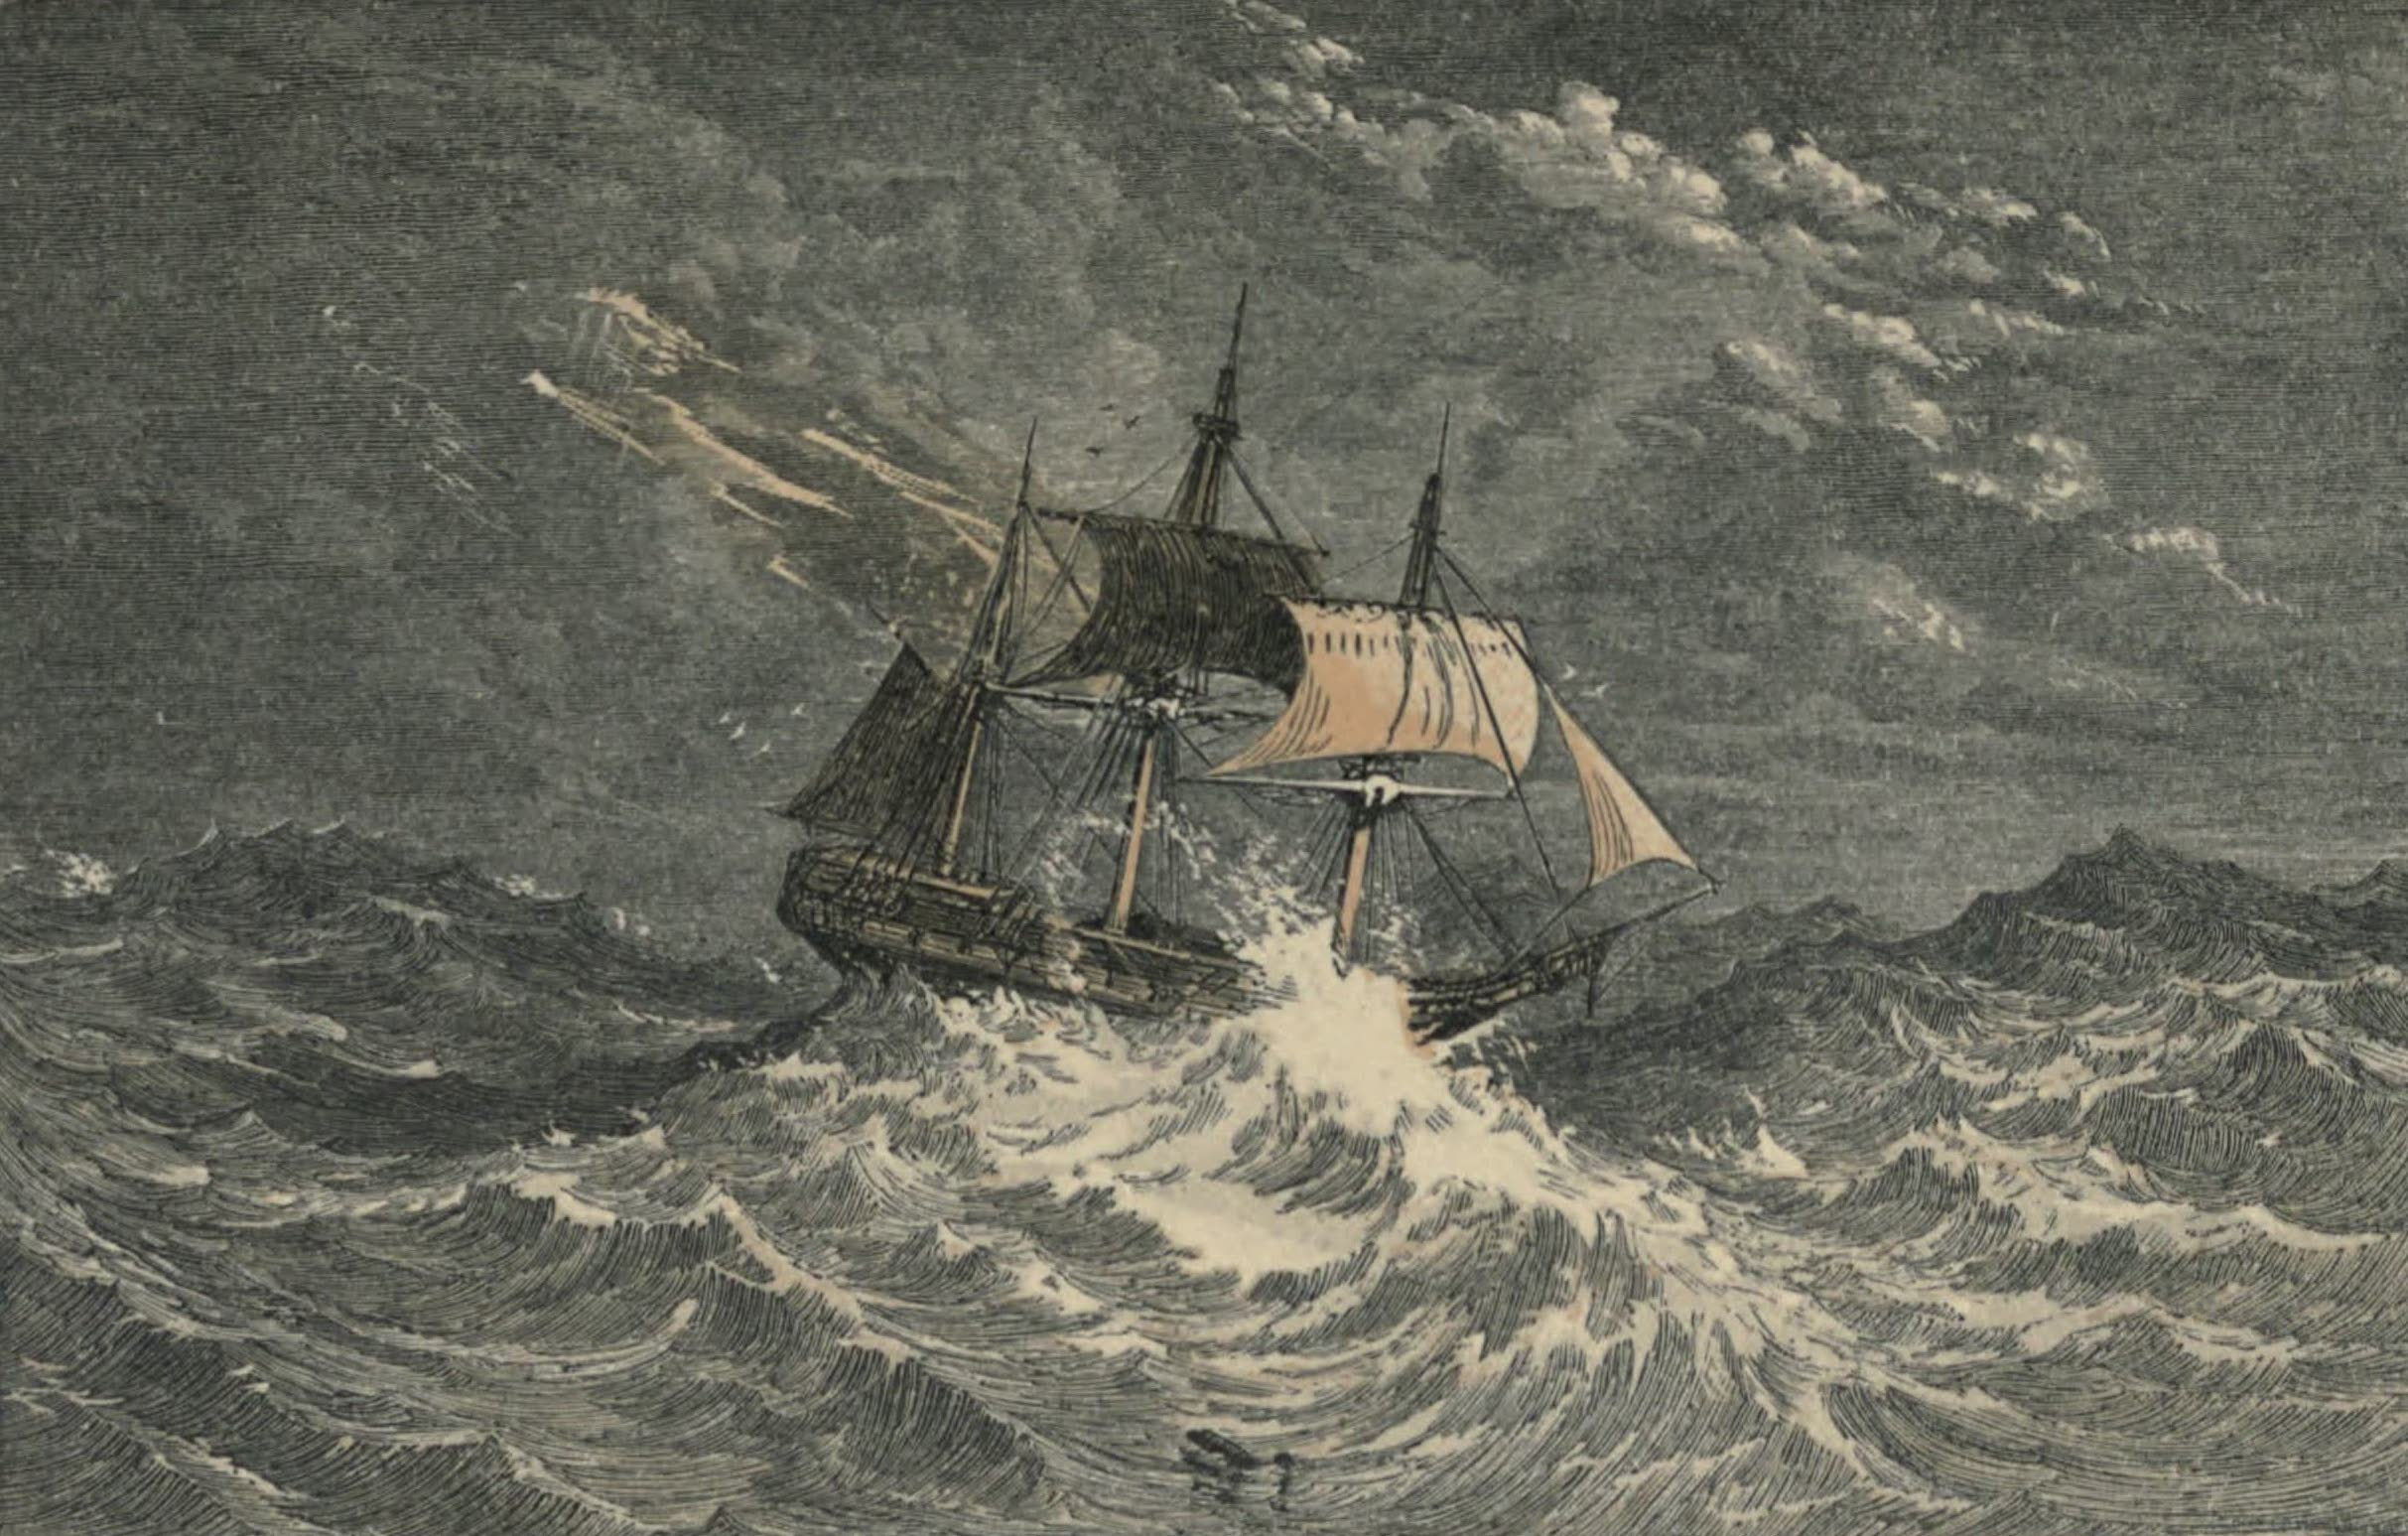 A Woman's Journey Round the World - Storm in the Atlantic (1852)